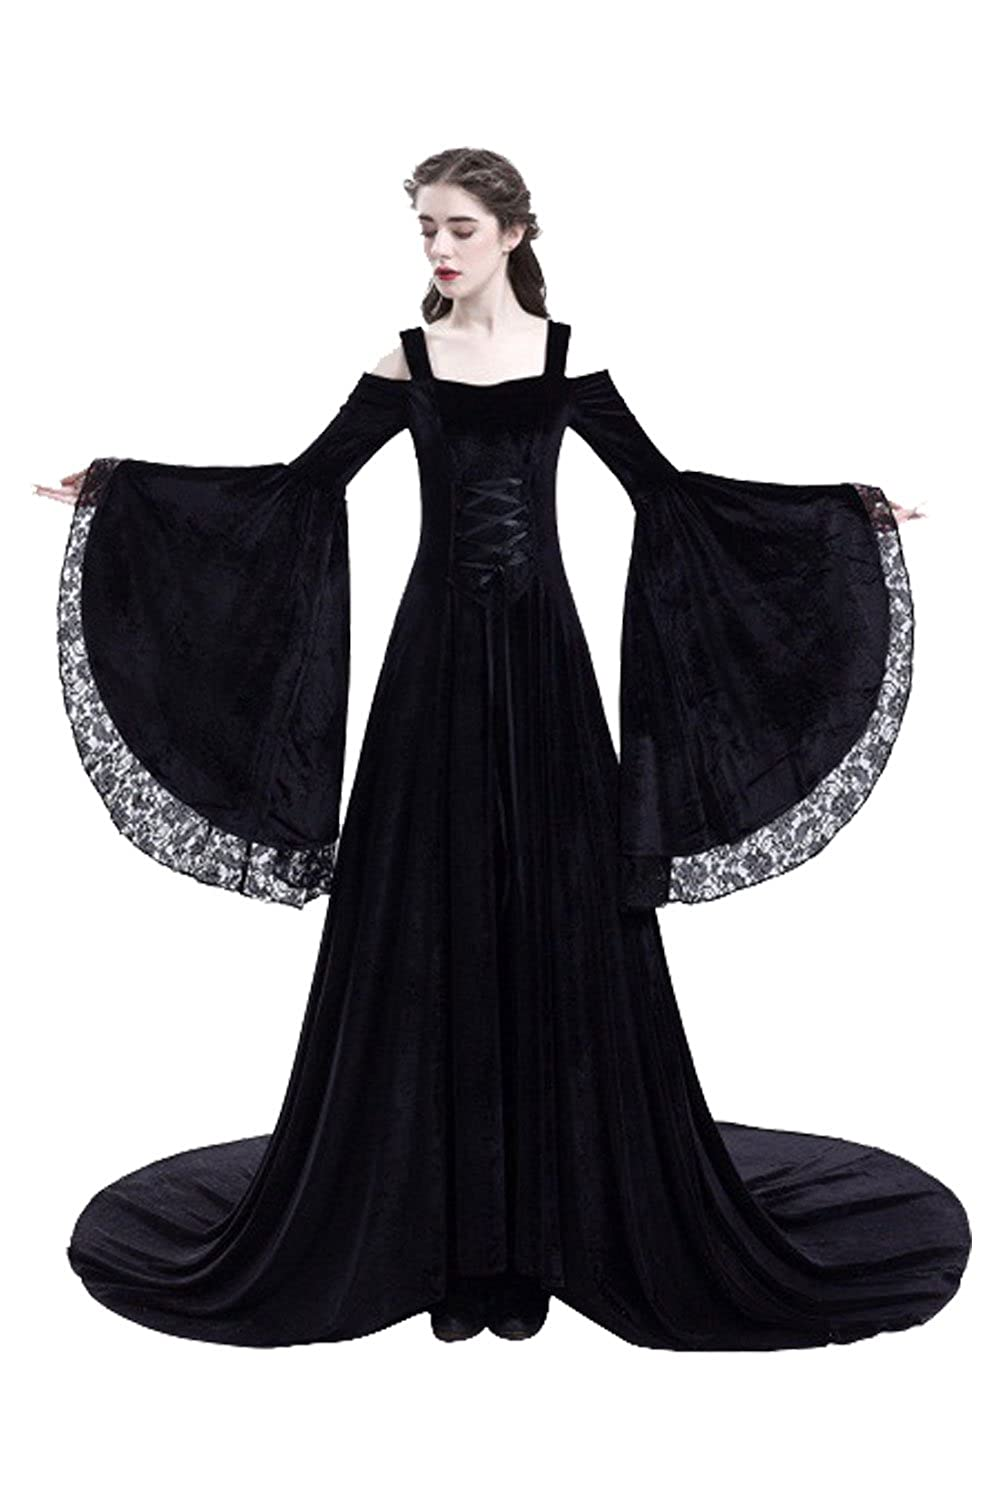 Amazon.com: CHECKIN Womens Medieval Lace Trumpet Sleeves Costume Retro Renaissance Gothic Lace up Dress Suit: Clothing